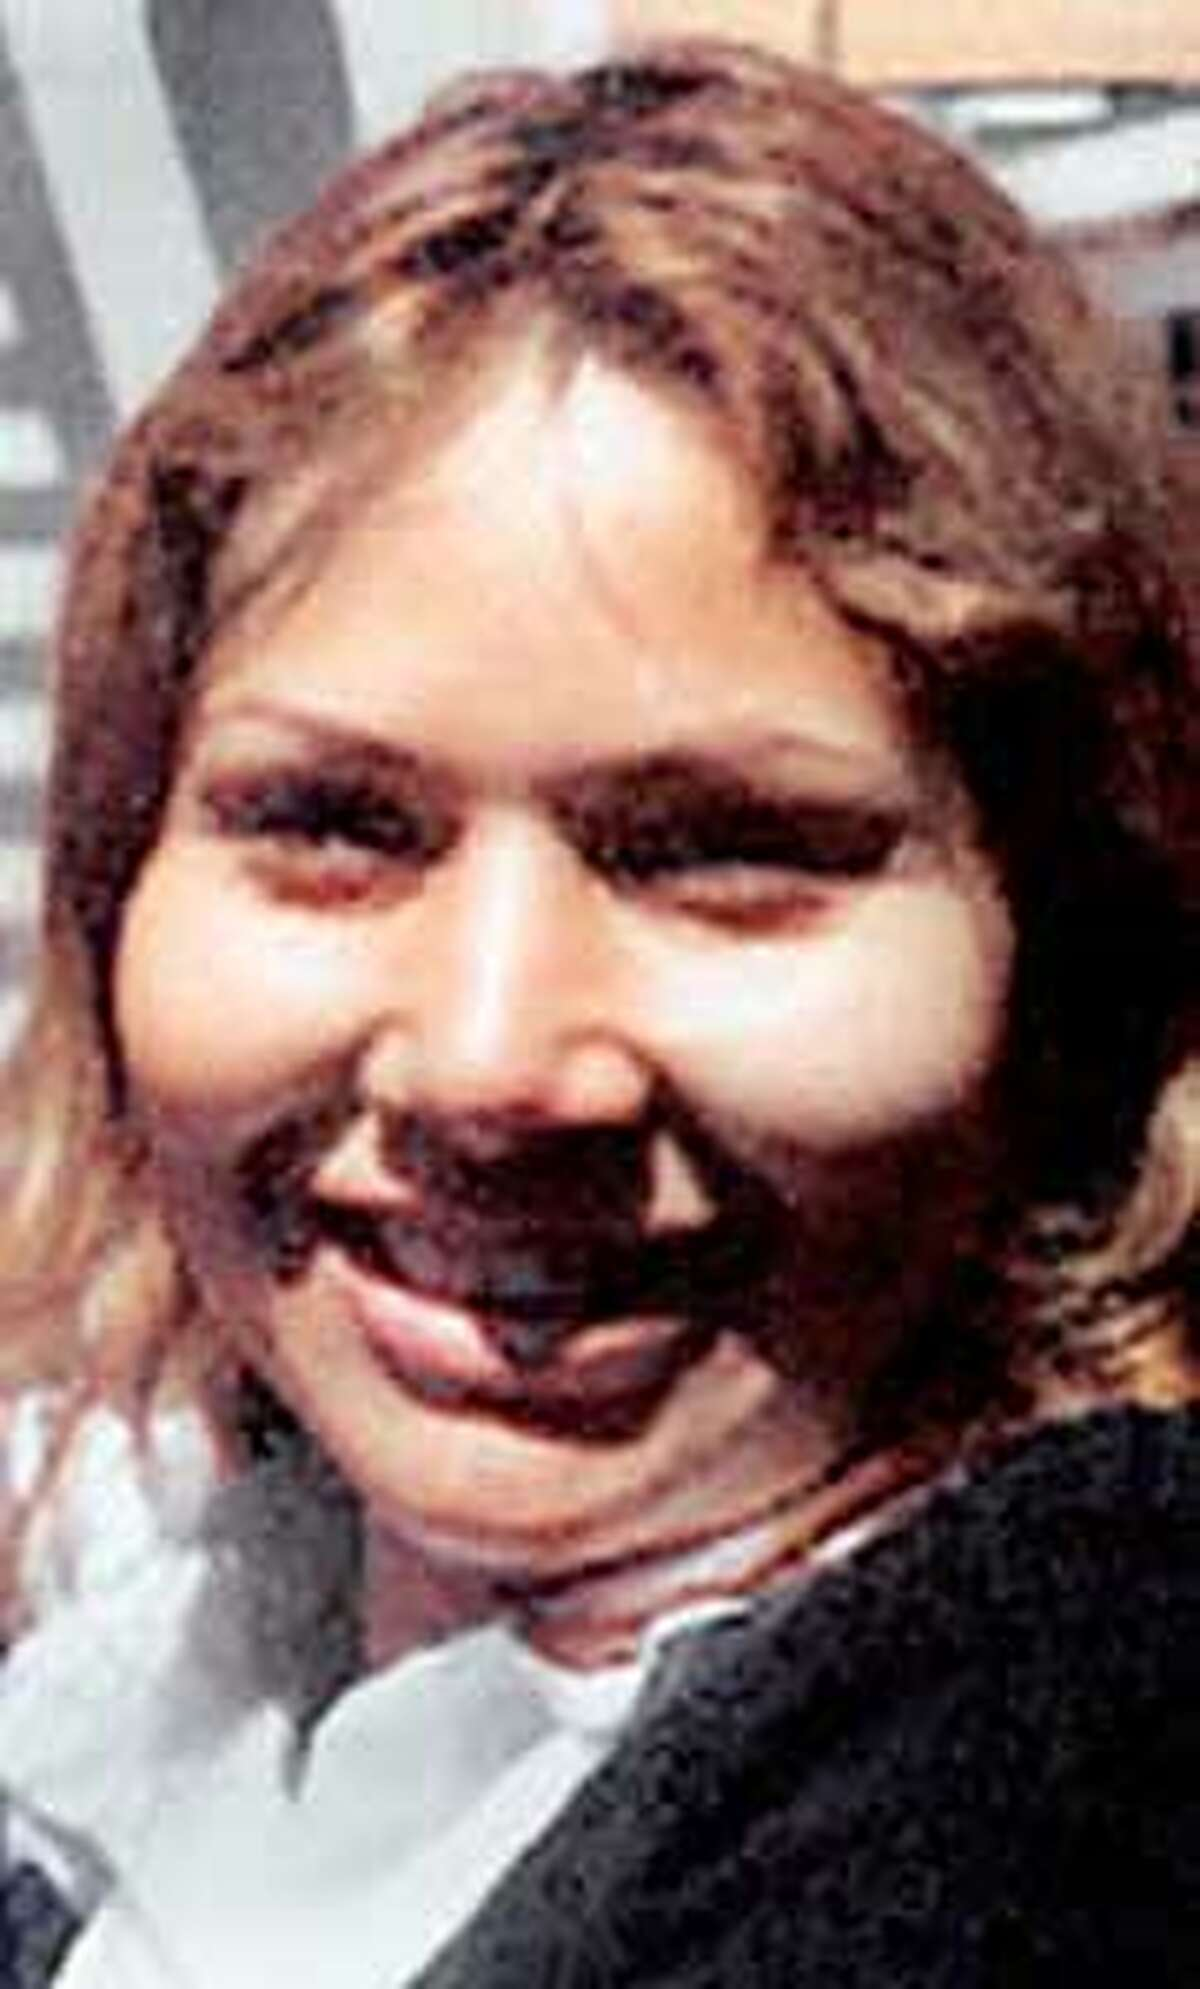 THIS IS A HANDOUT IMAGE. PLEASE VERIFY RIGHTS. This is a SFPD missing persons handout photo of Evelyn Hernandez and her son Alex Hernandez, 6. She was last heard from on May 1, 2002. Evelyn is 8.5 months pregnant. Her wallet was found in a gutter in a canal in South San Francisco with cash and her paycheck.